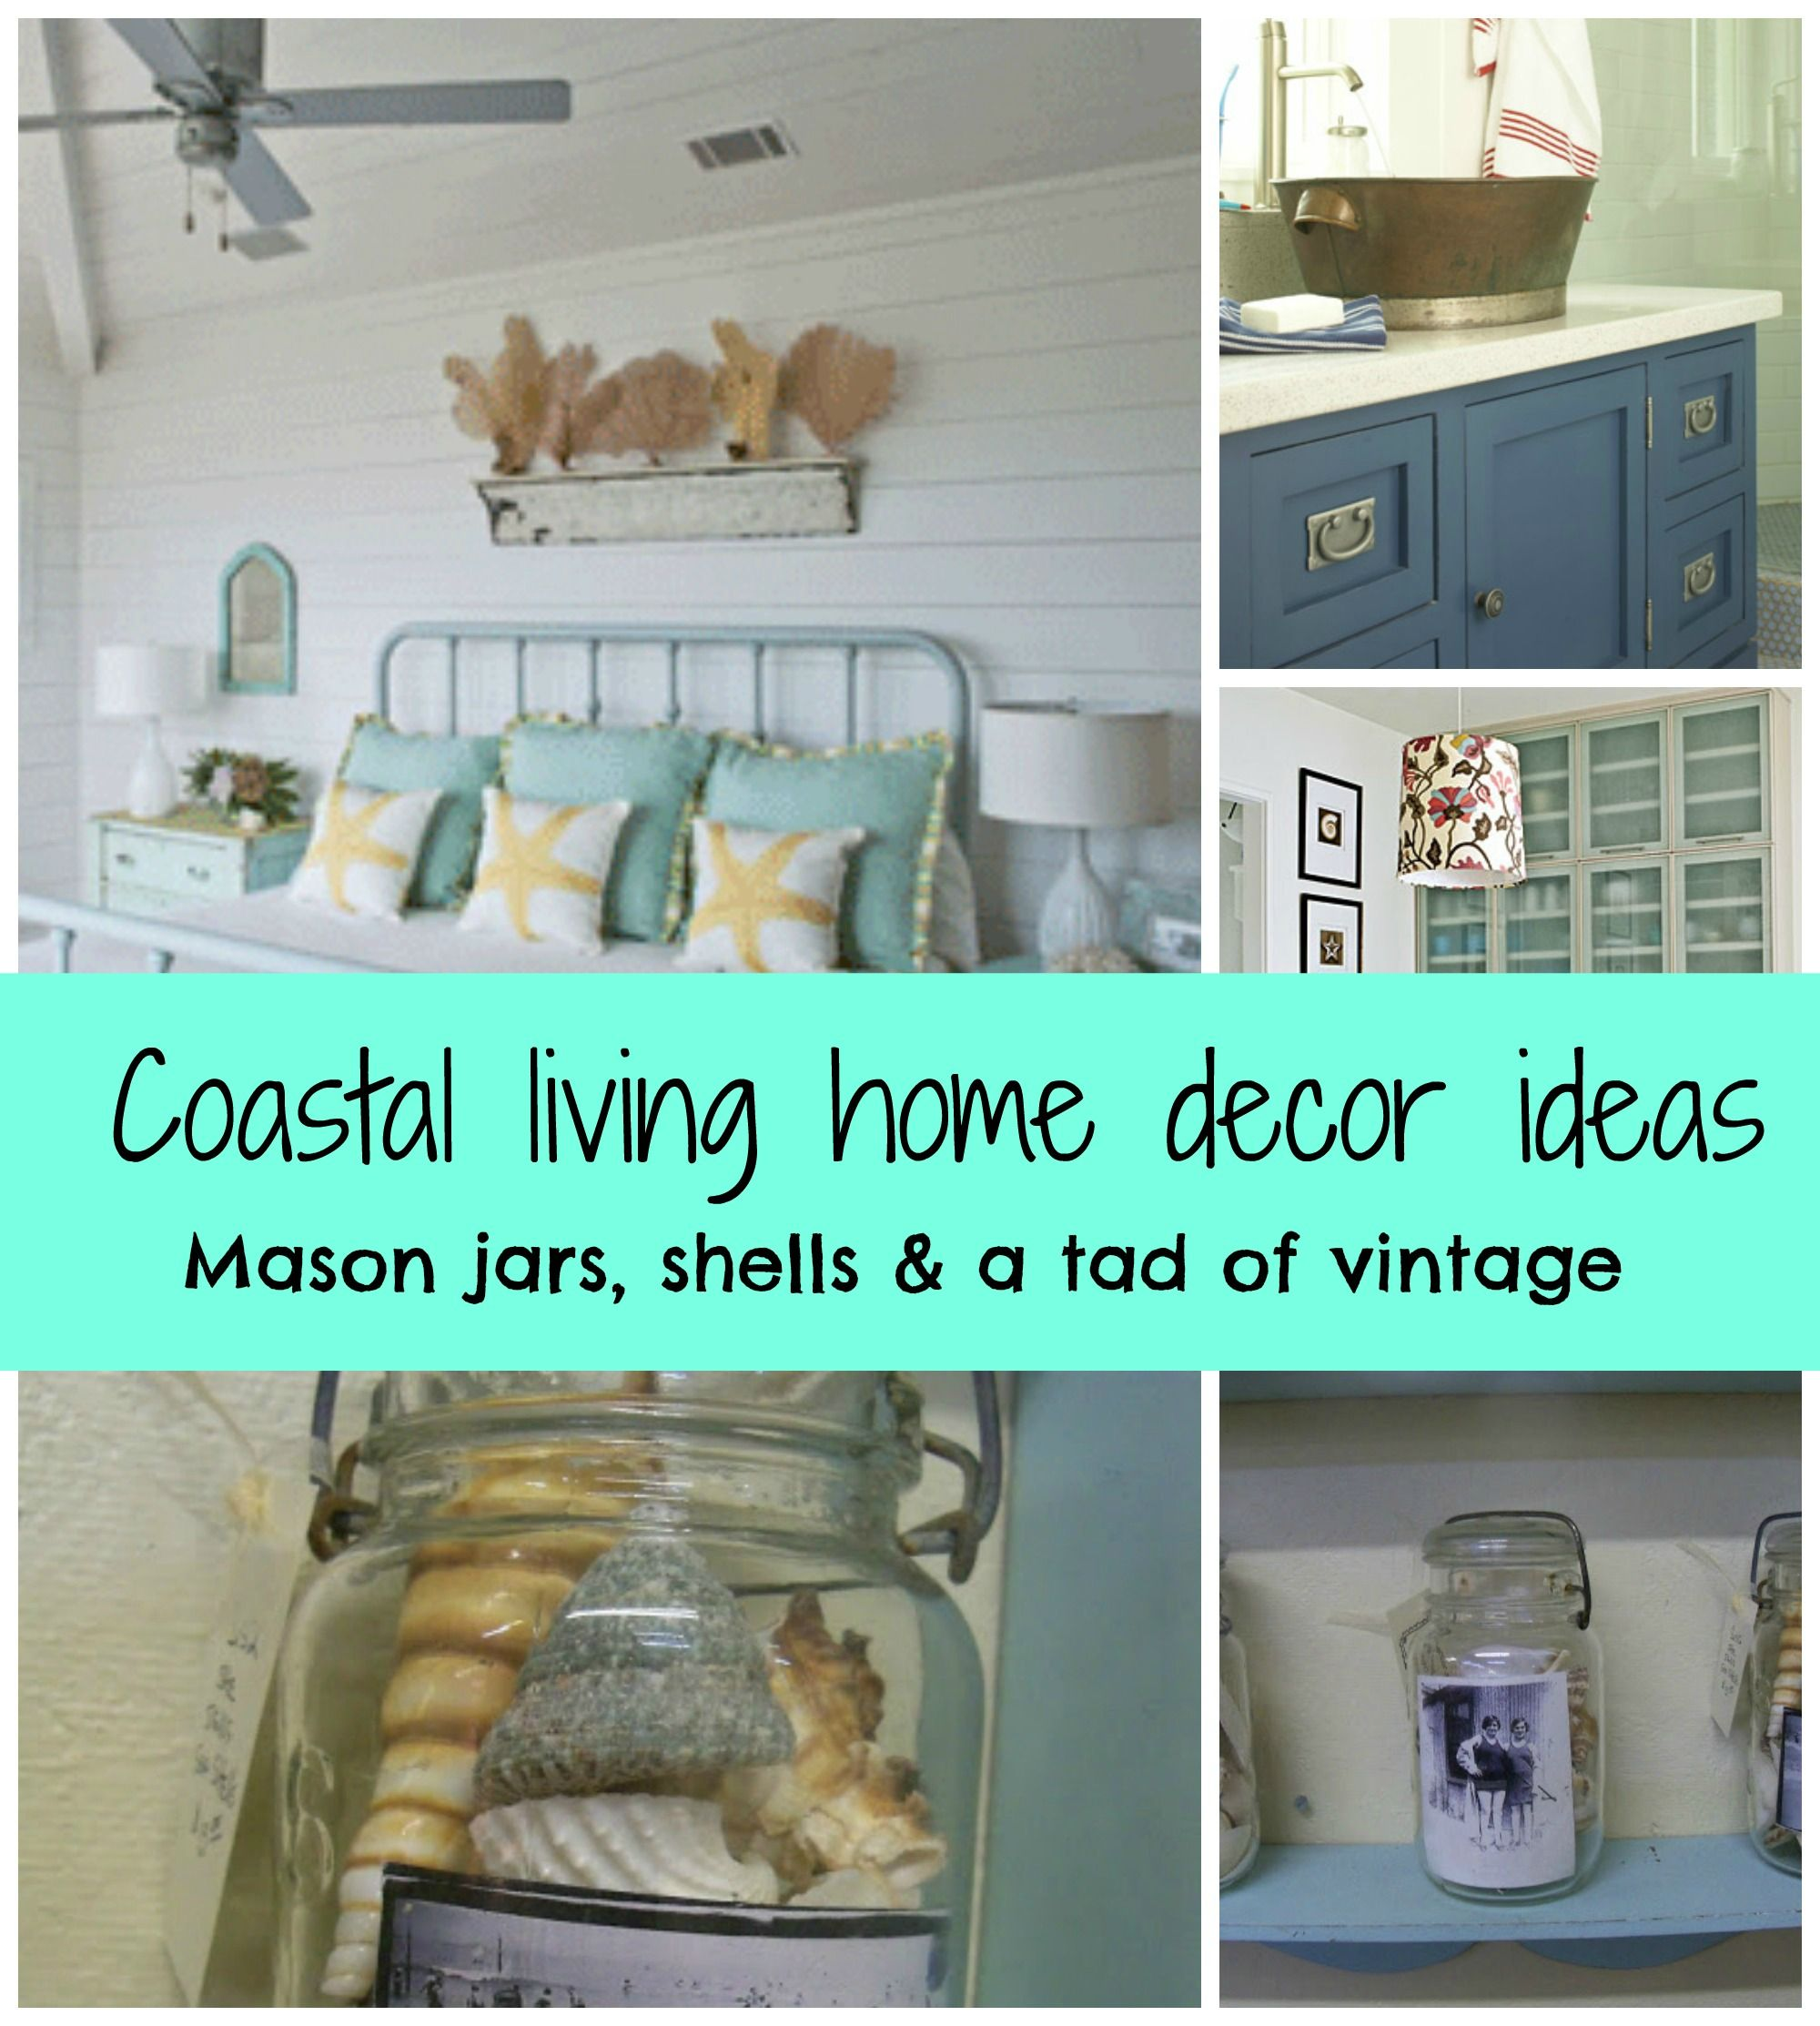 Sensational 1000 Images About Rustic Teal Coastal Living Rustic Style On Largest Home Design Picture Inspirations Pitcheantrous